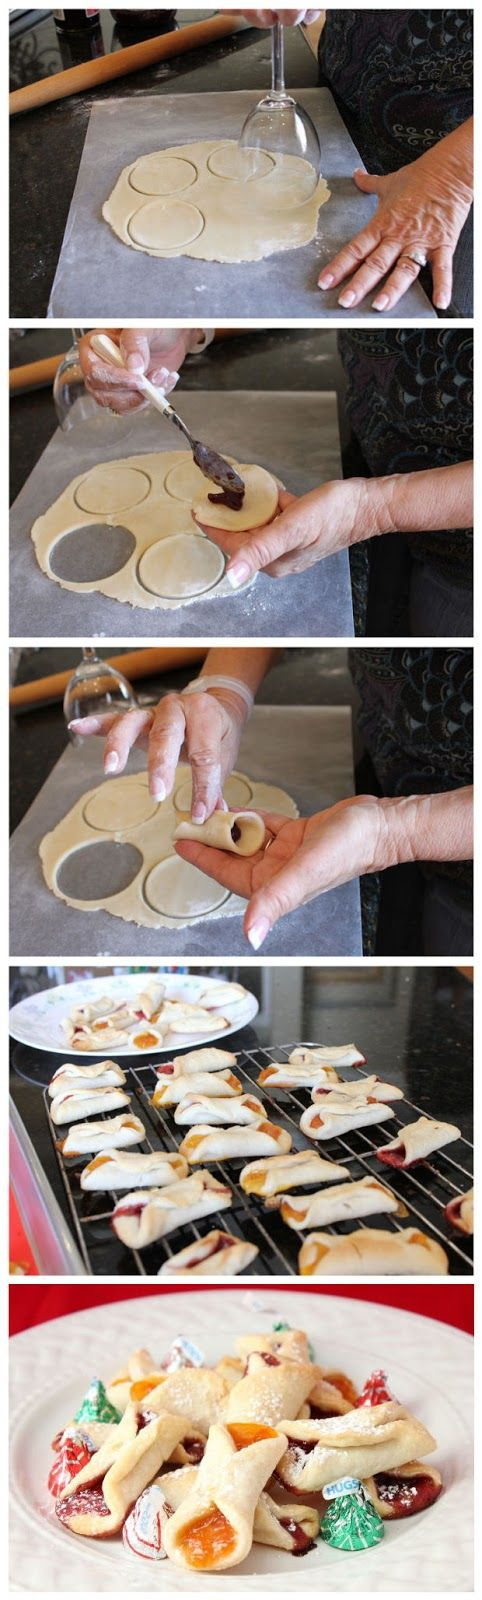 Cream Cheese Cookies  Ingredients:  •2 sticks of salted butter, softened •2 ½ cups flour •8 oz cream cheese, softened •1 (15-18 oz jar) of Jam or Preserve of your choice (do not use jelly) •You will also need: •Wax paper •Rolling pin •Optional-Silicone Cookie Sheet liner (Makes for easy cleanup)